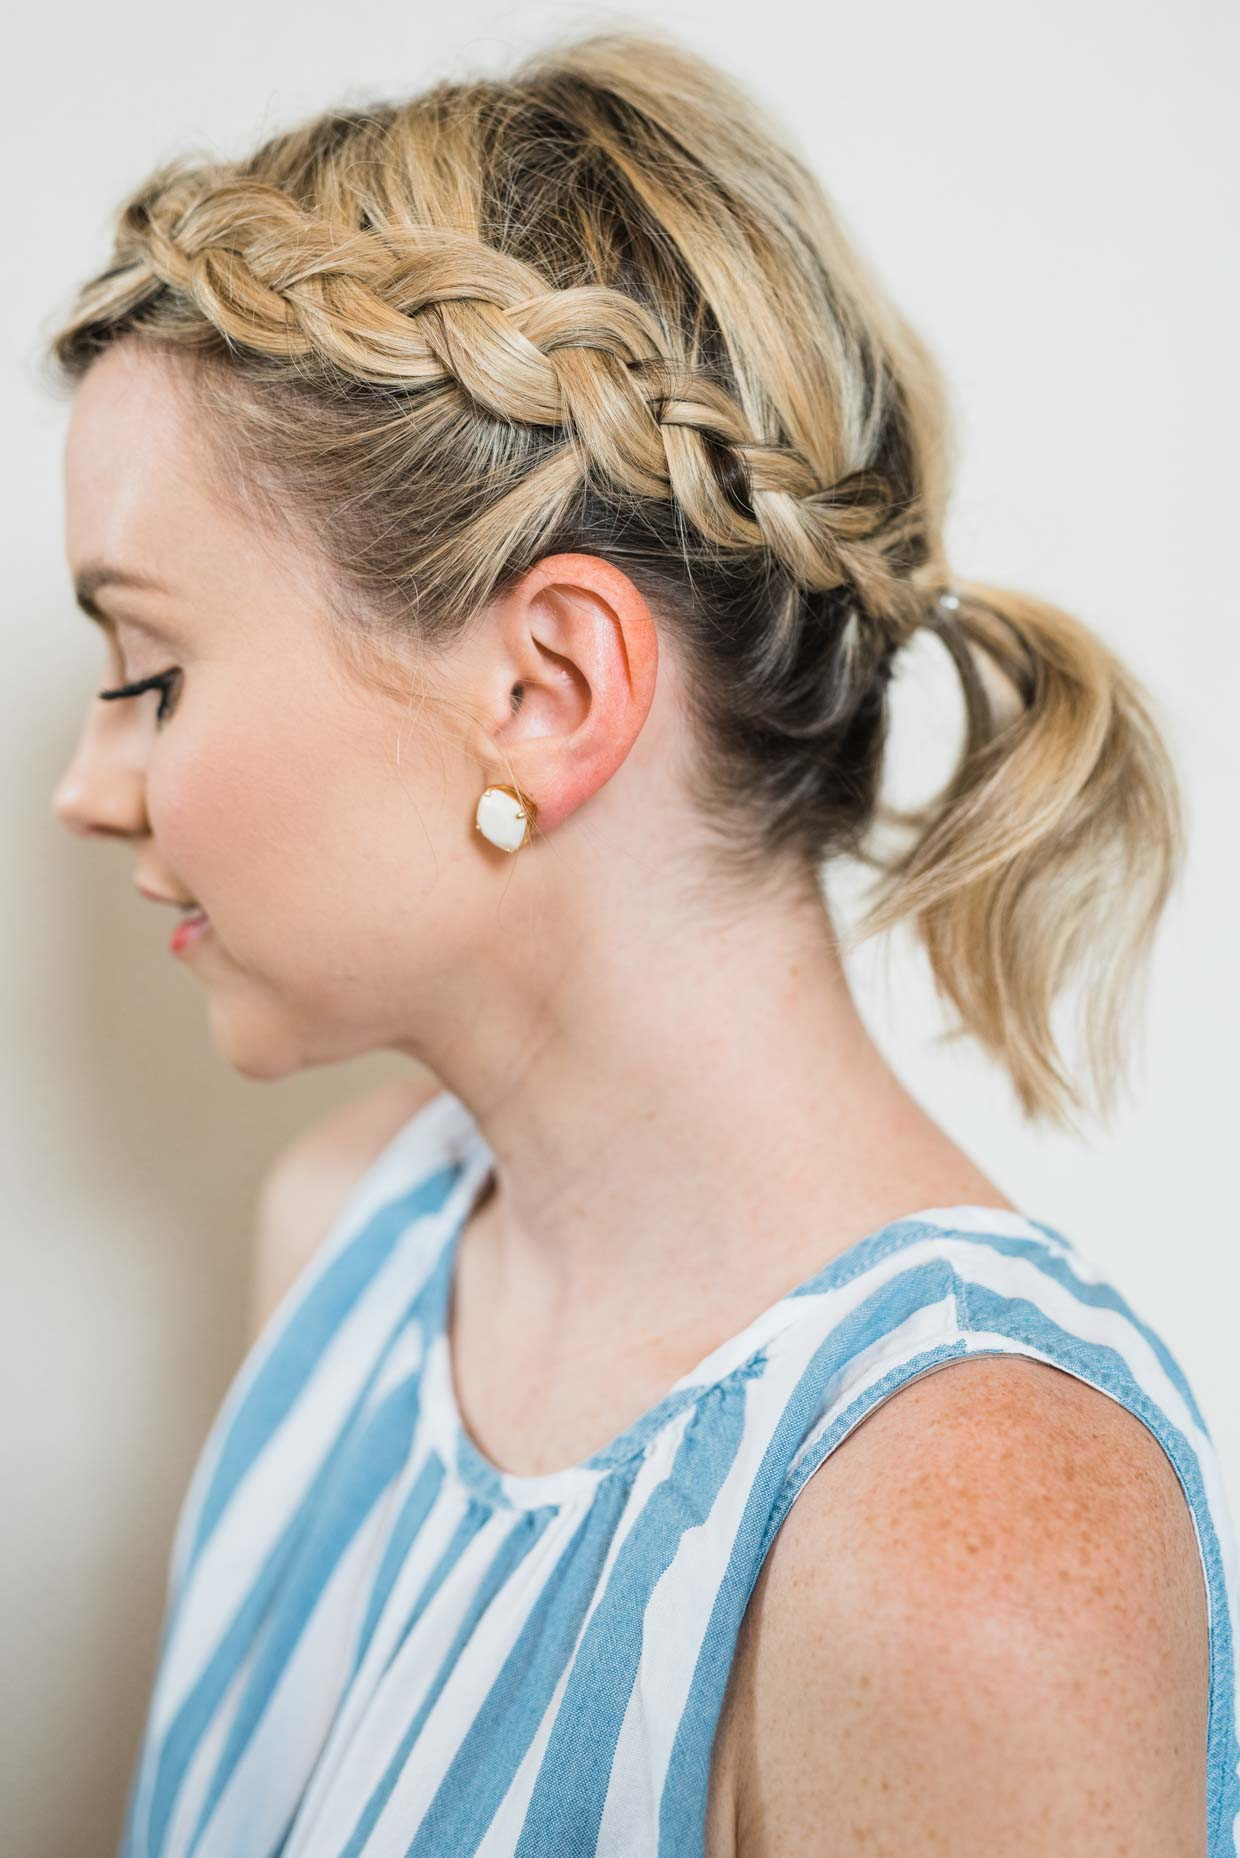 Awe Inspiring How To Do An Easy Side Braid Ponytail Beauty Poor Little It Girl Schematic Wiring Diagrams Phreekkolirunnerswayorg